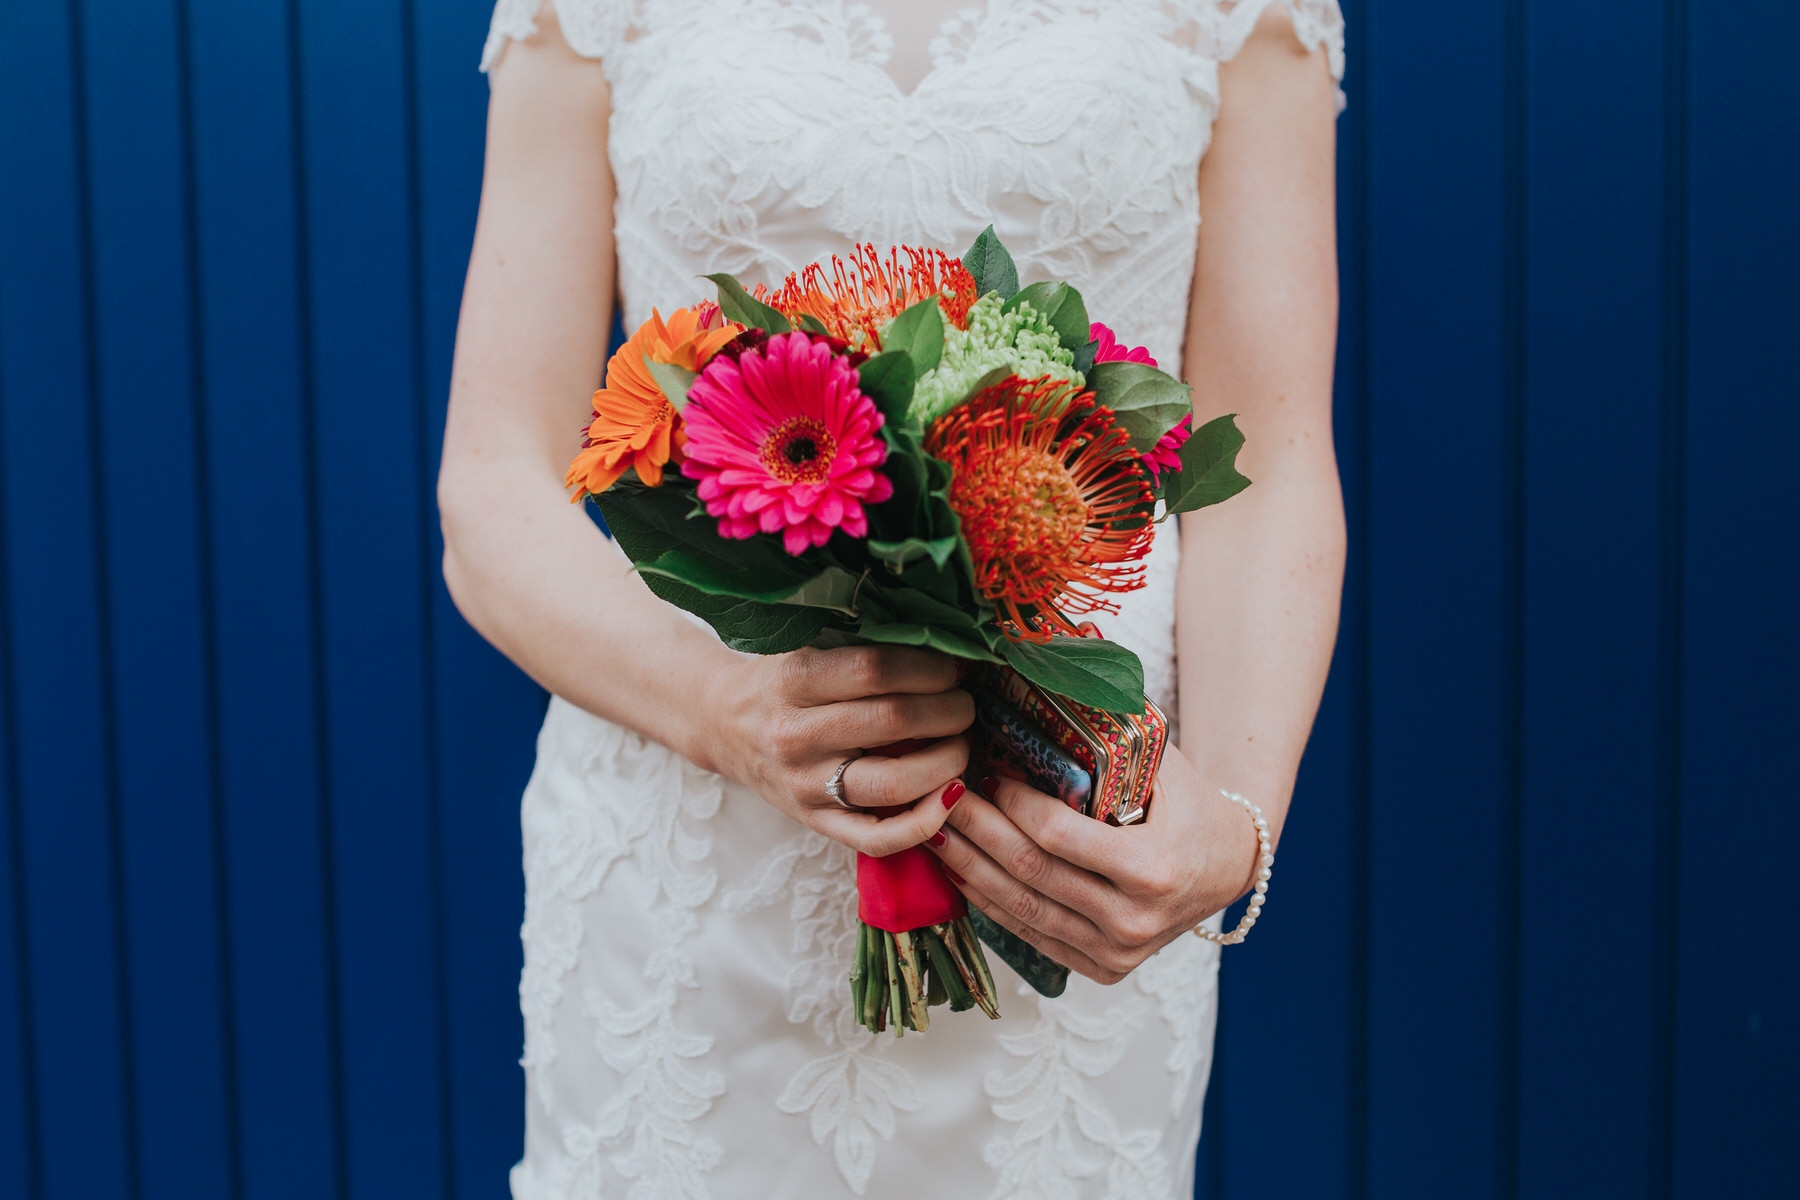 Bride holding bright ornage pink bouquet proteas barbetondaisy.jpg